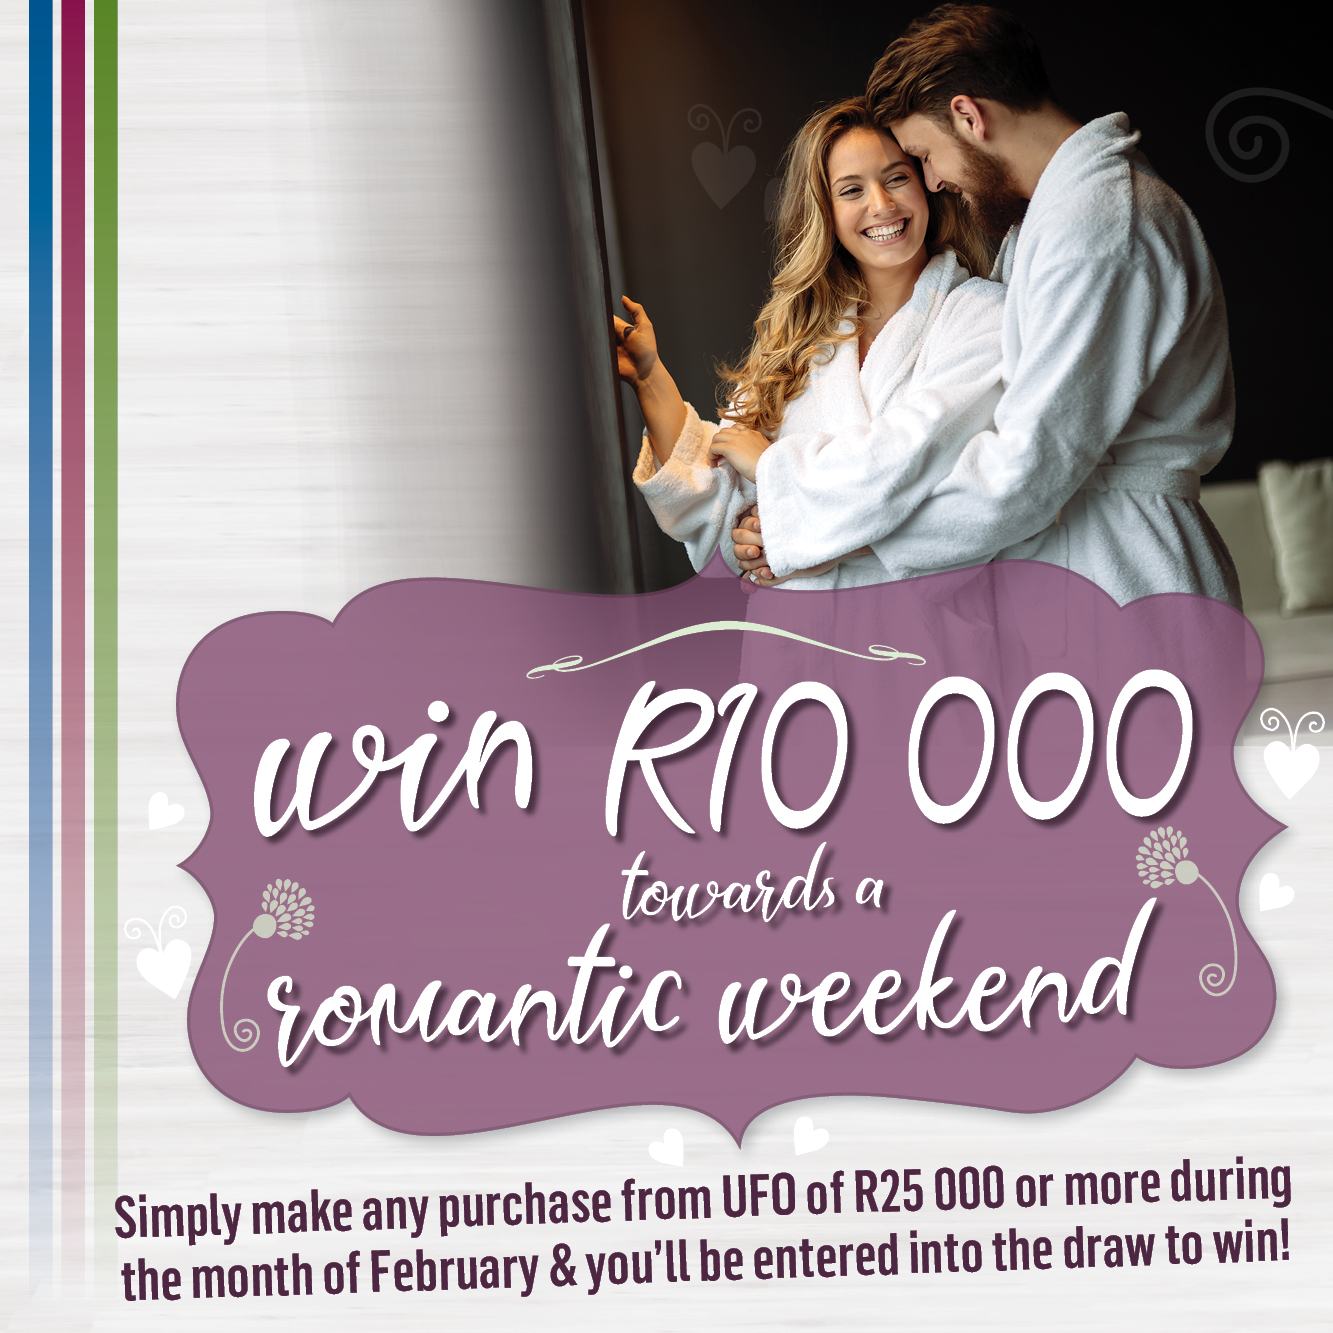 UFO Furniture February 21 Win R10 000 for Romantic Weekend